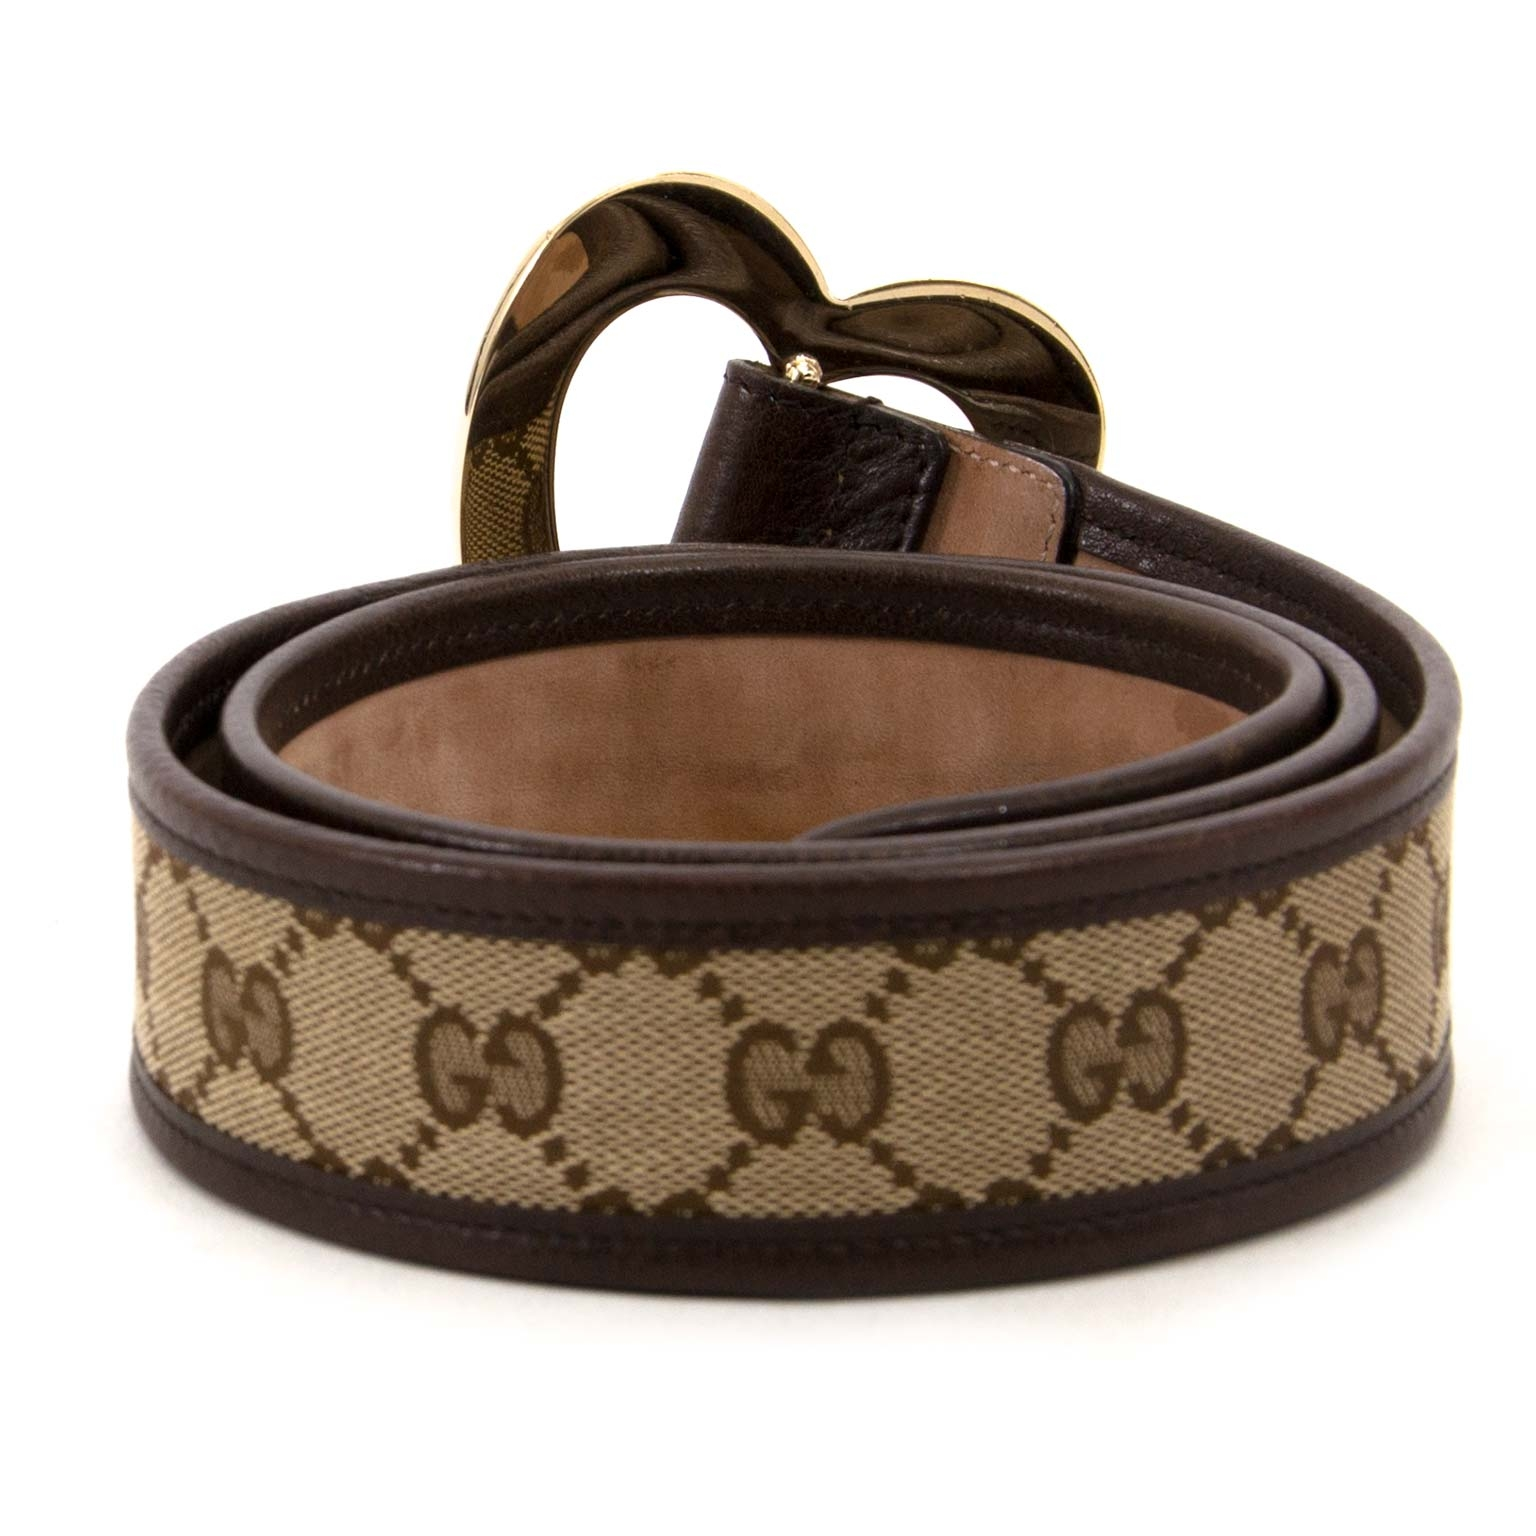 gucci monogram heart buckle belt now for sale at labellov vintage fashion webshop belgium